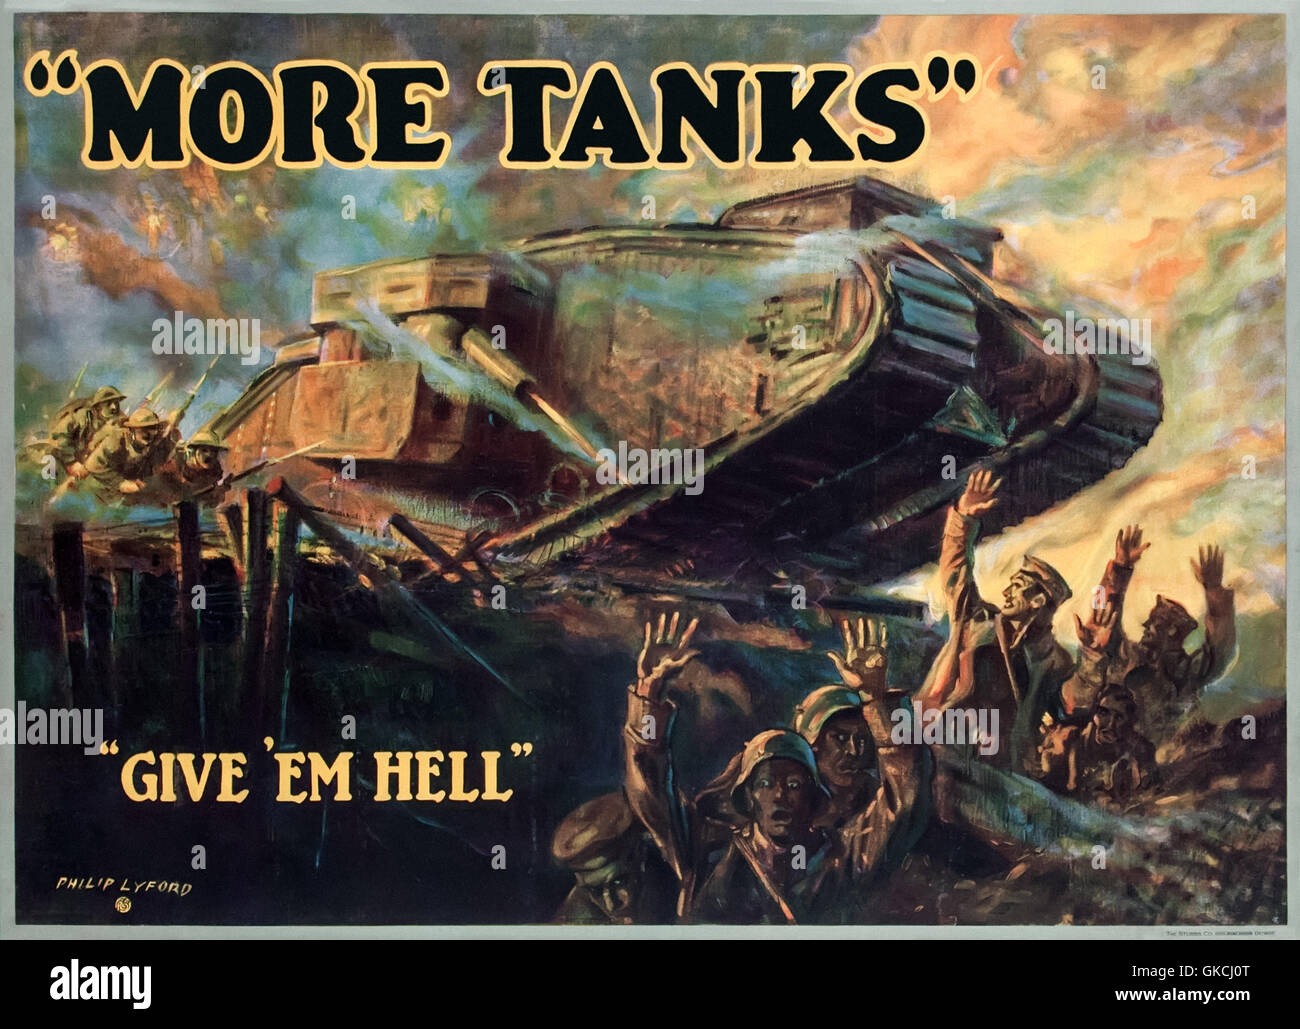 more tanks give em hell 1918 world war i motivational poster for the manufacture of tanks for the newly formed united states tank corps